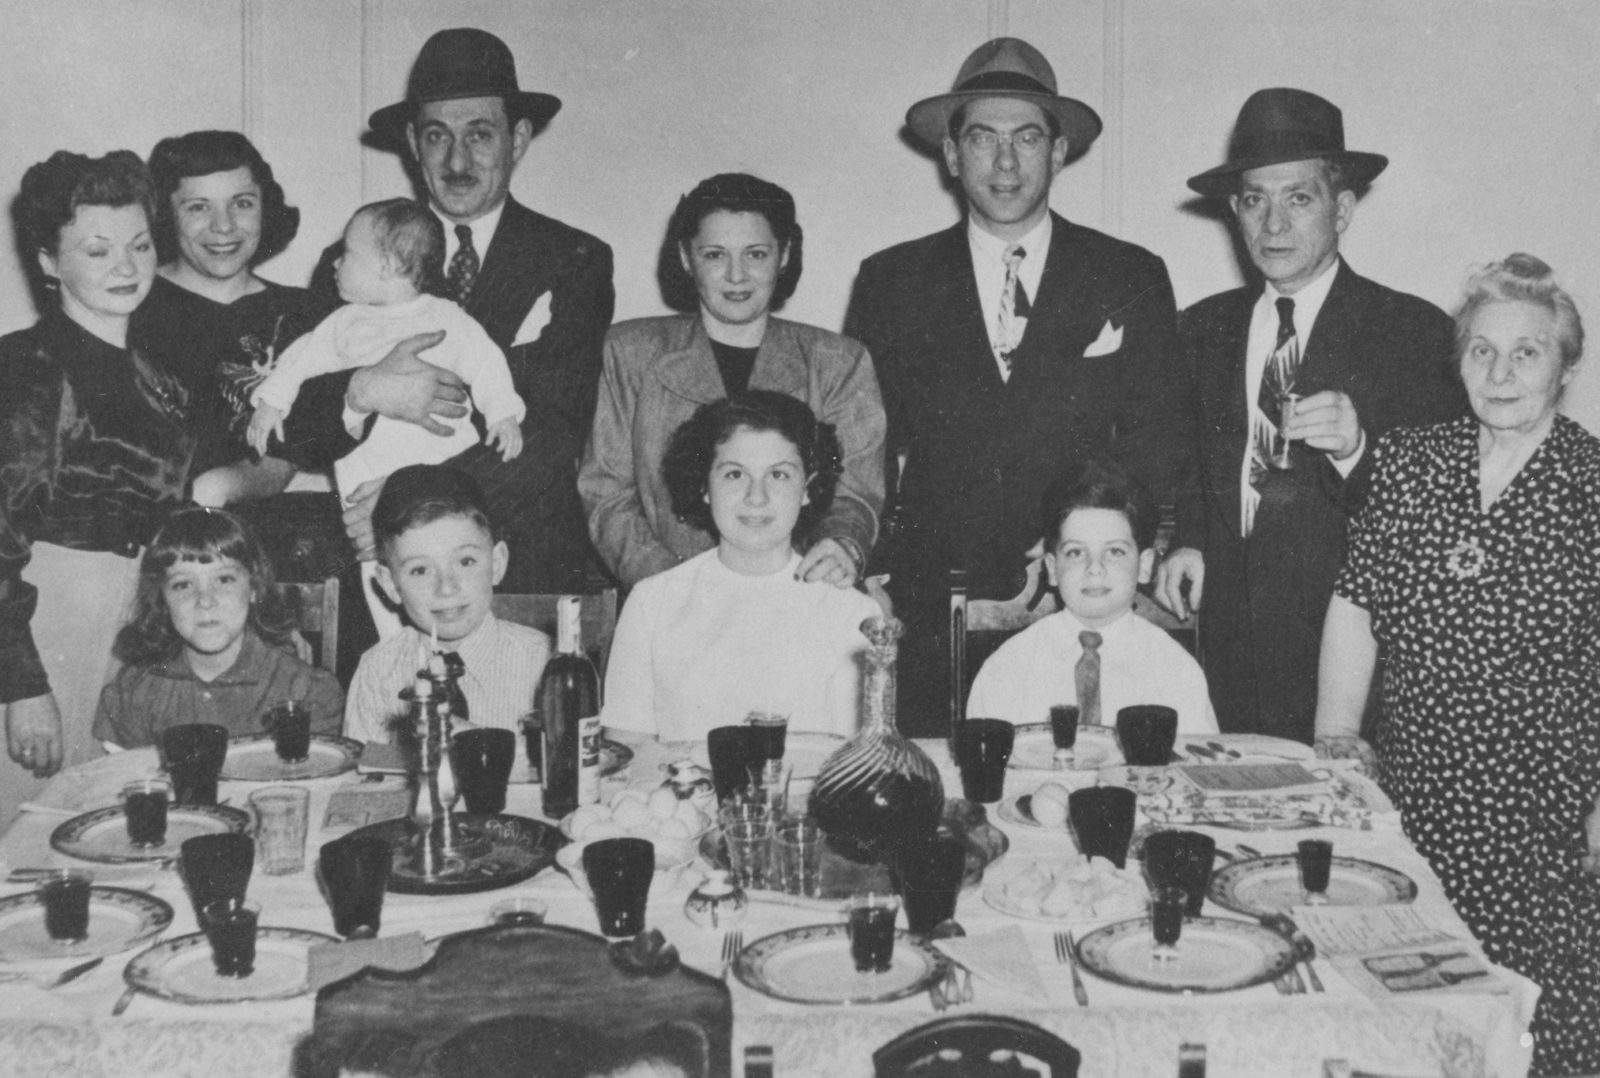 The Epstein family seder in the 1950s.